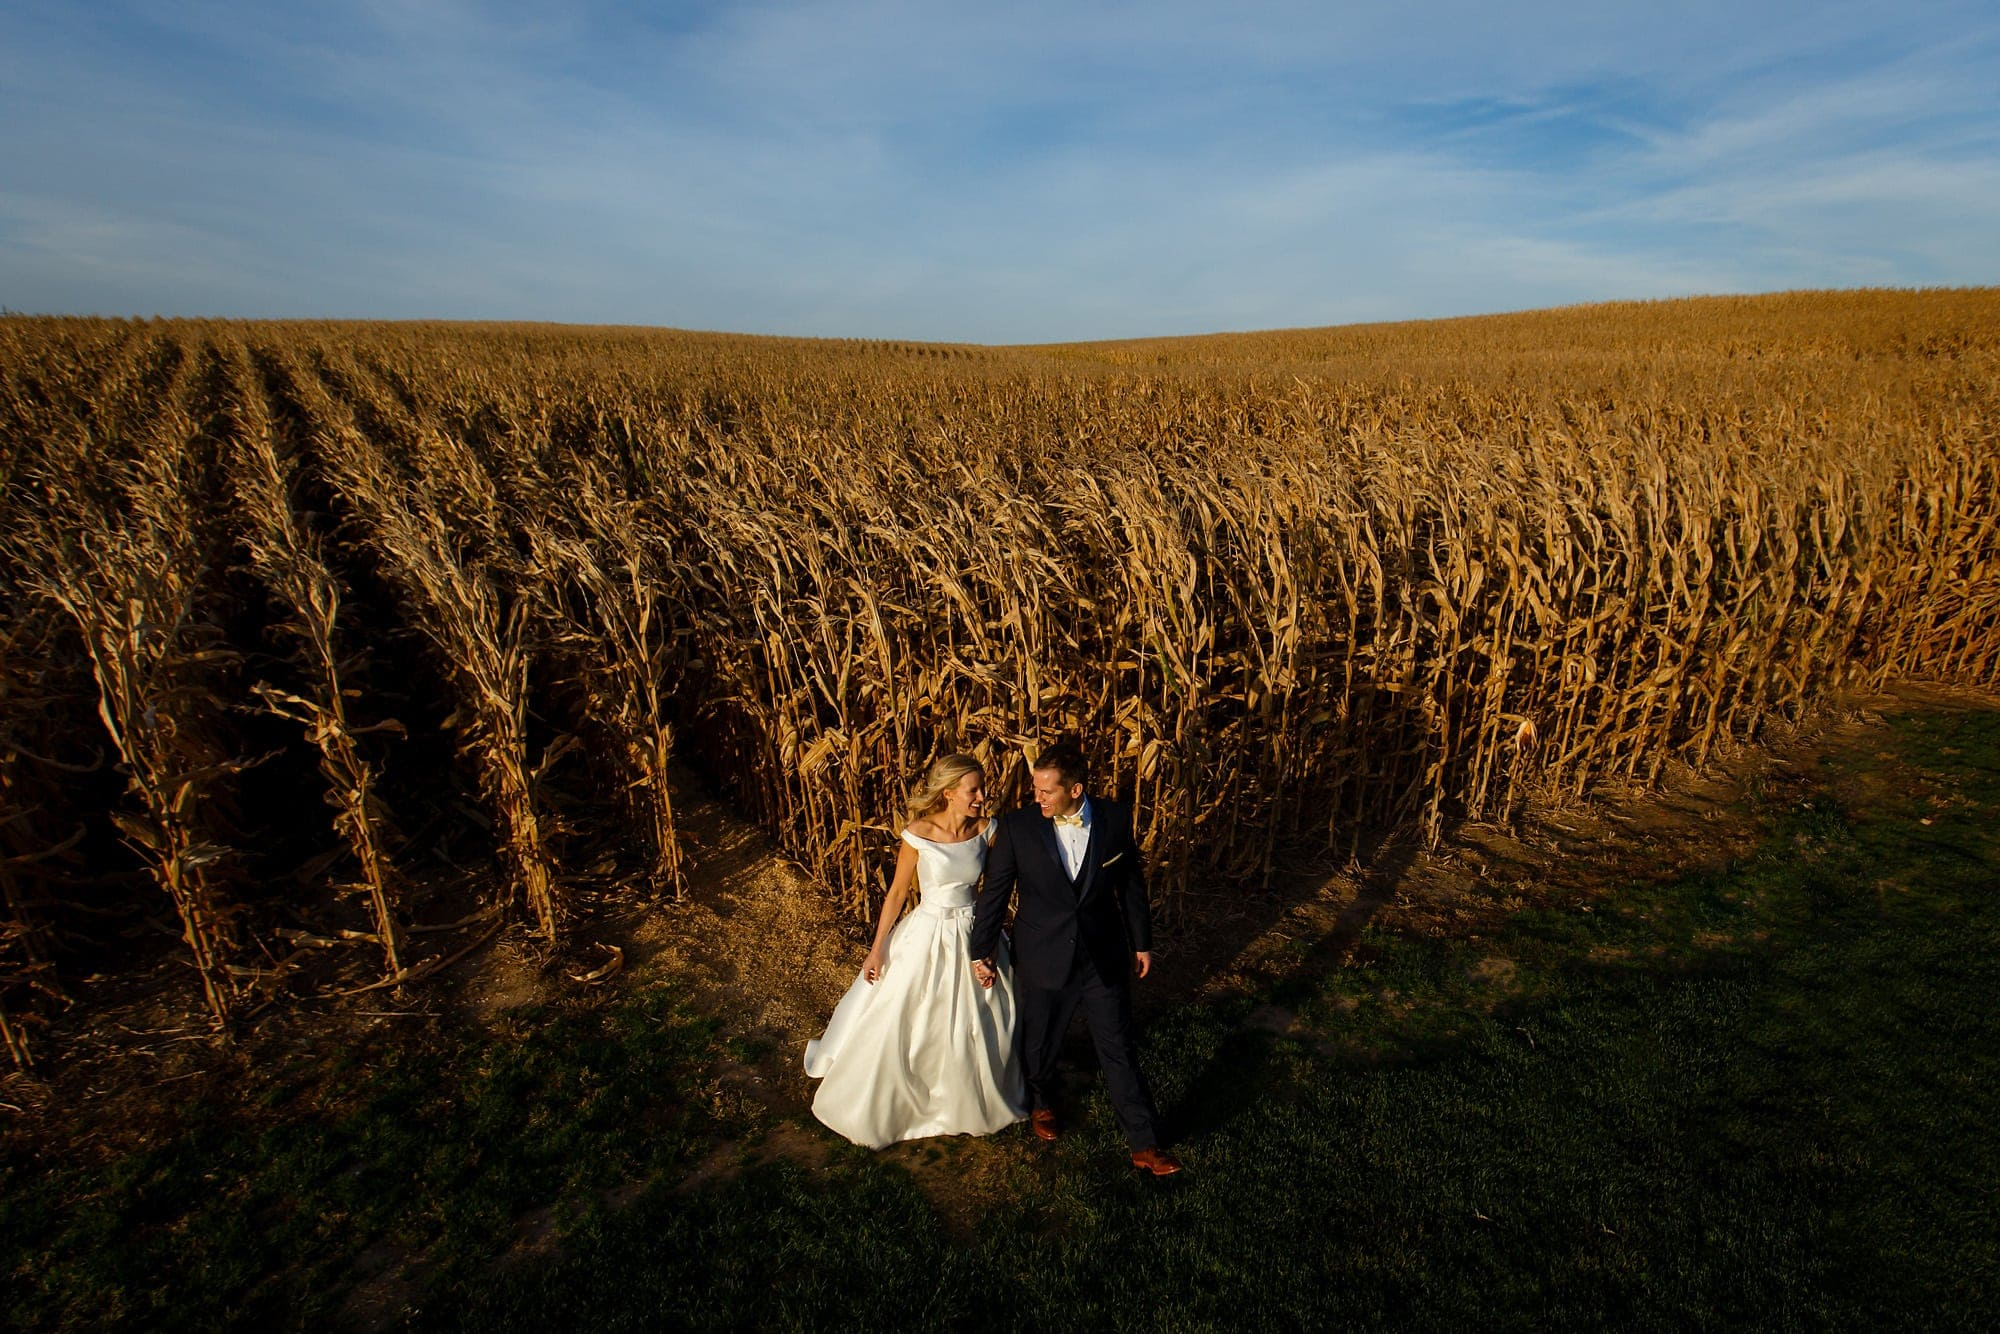 A bride and groom walk out of the cornfield during their Field of Dreams wedding